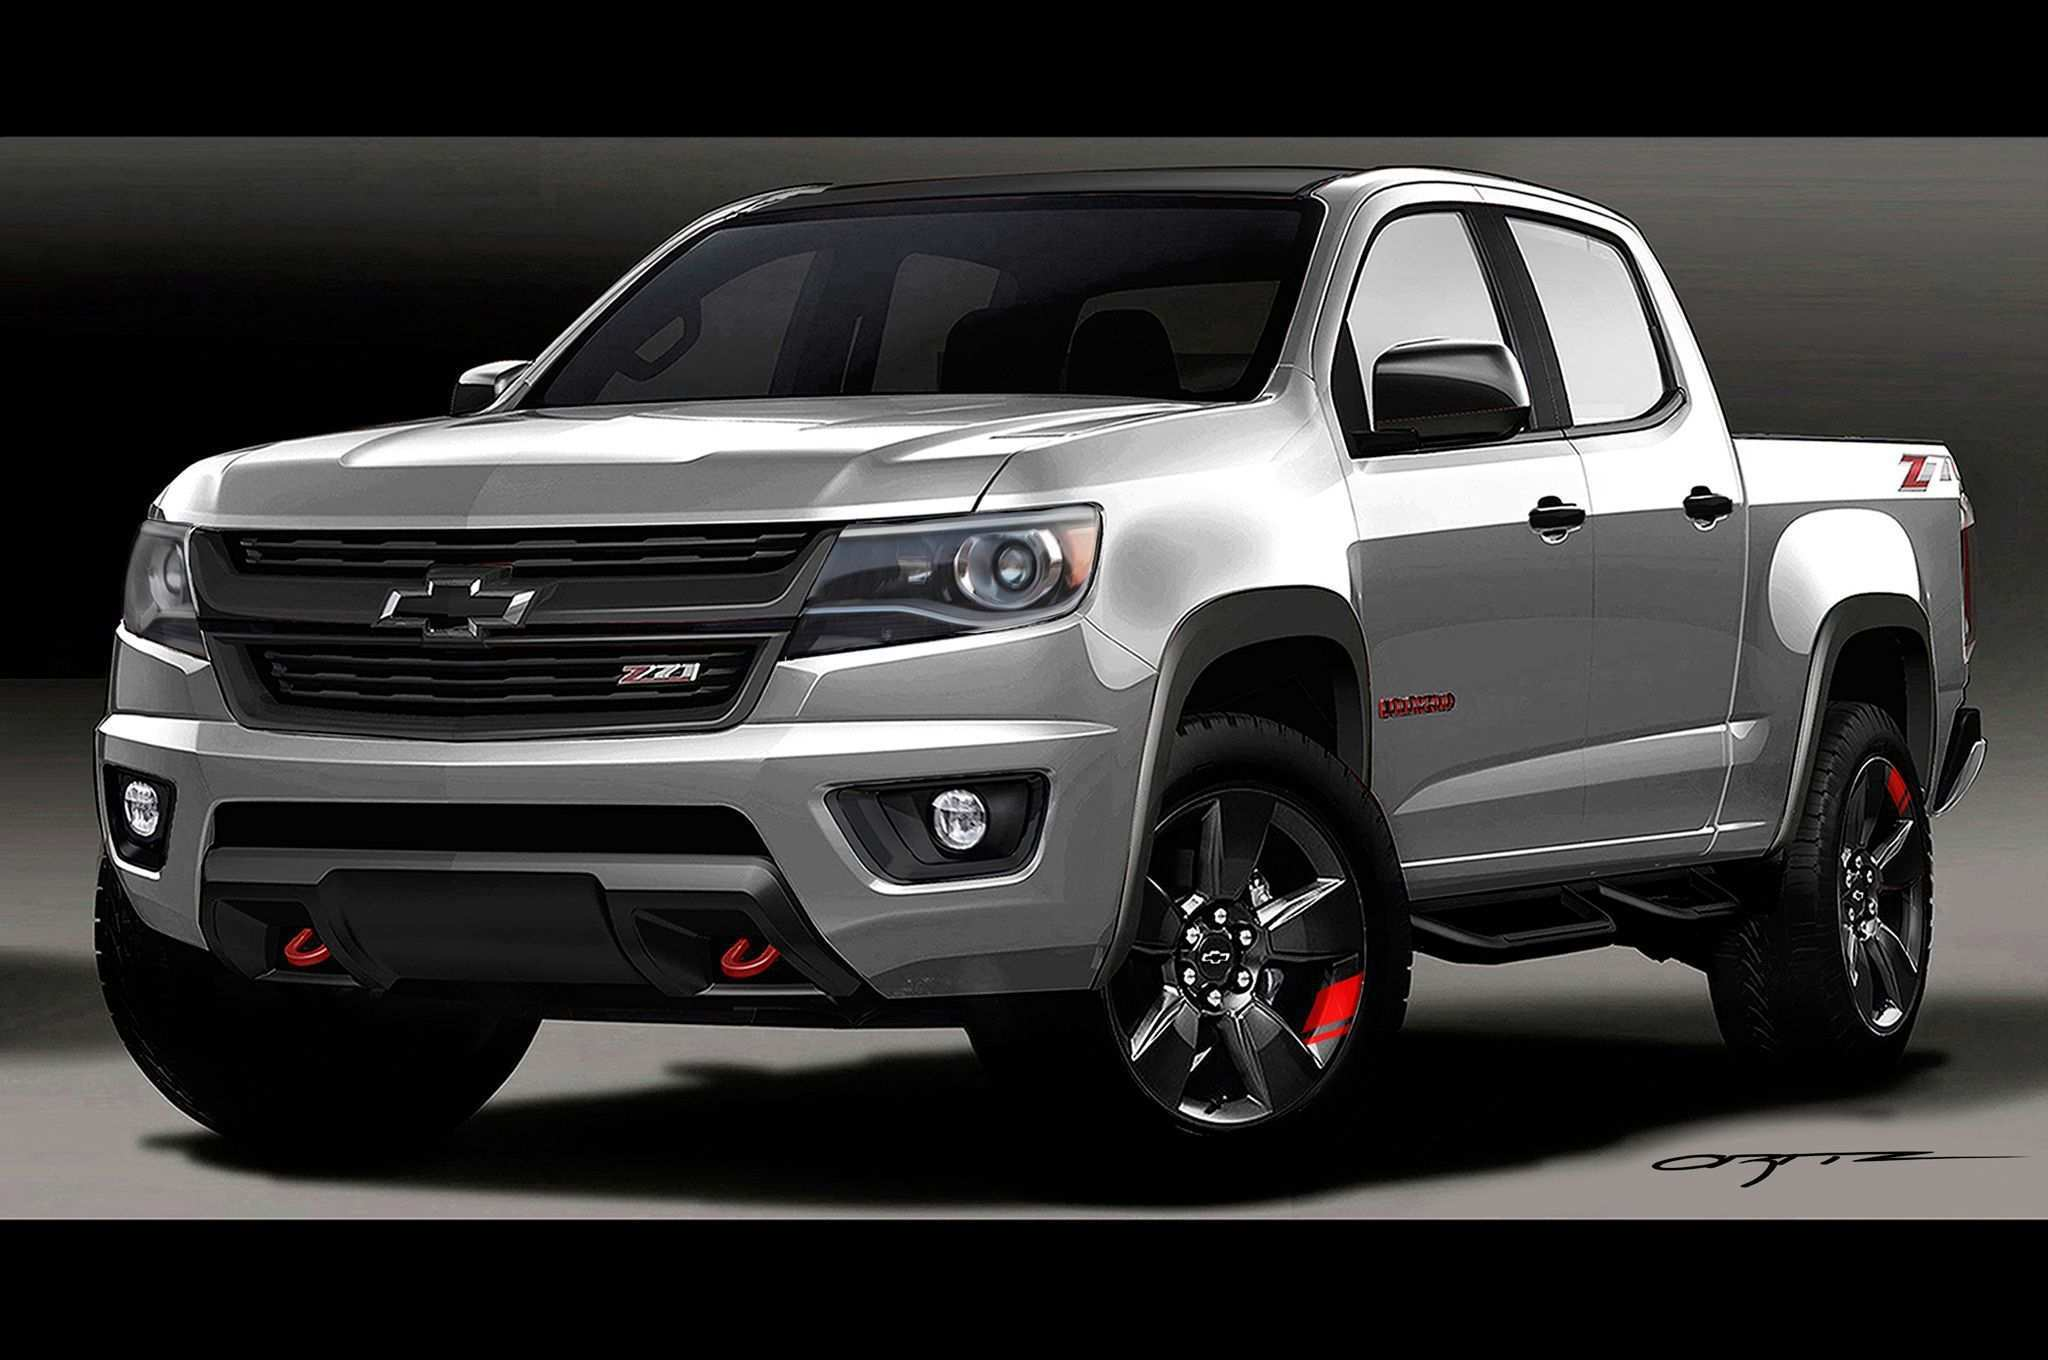 28 All New All New Chevrolet Colorado 2020 Research New for All New Chevrolet Colorado 2020